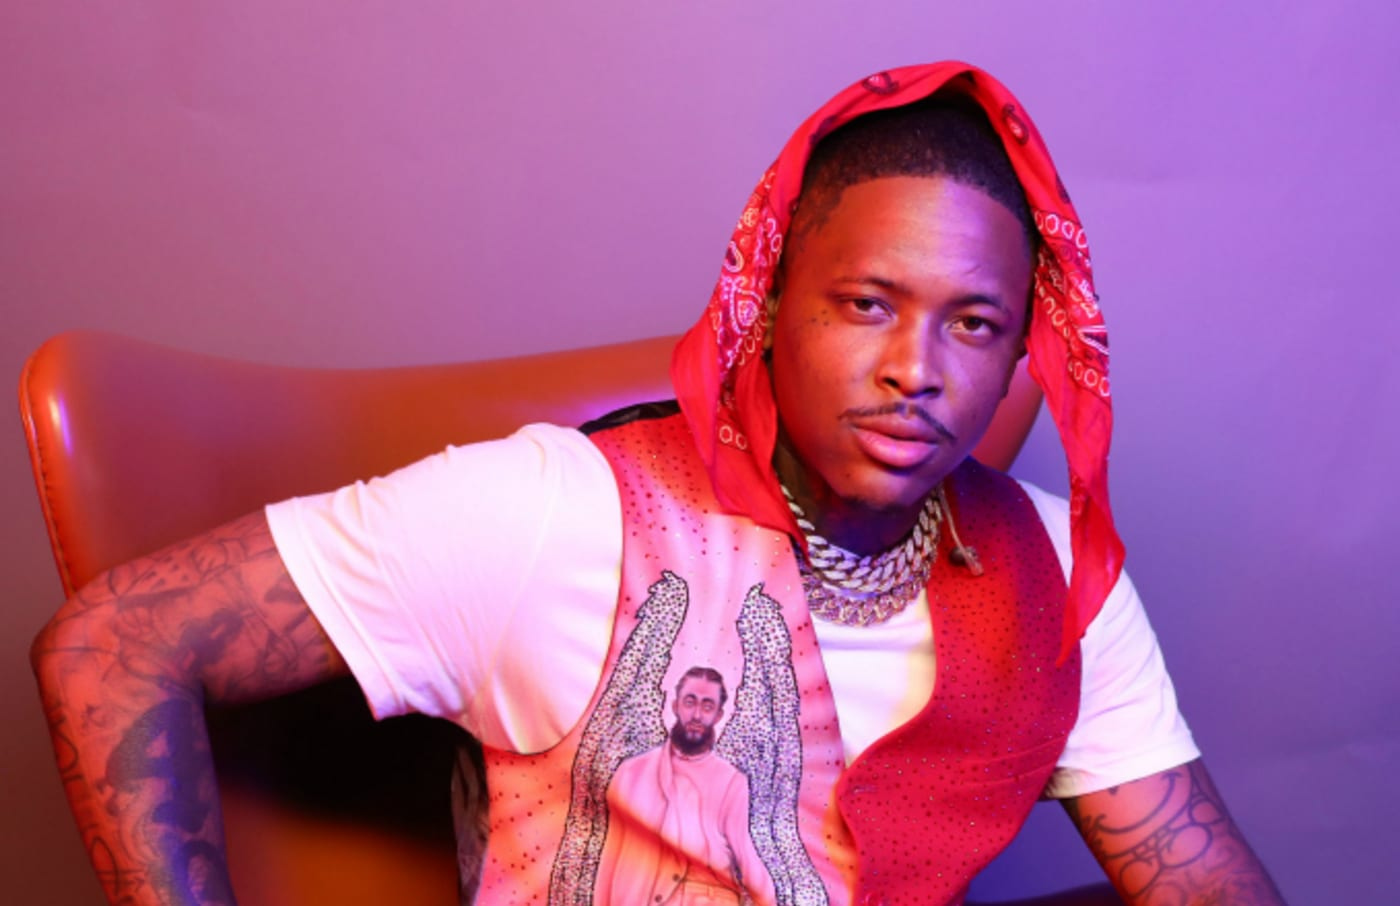 YG poses for a portrait during the BET Awards 2019